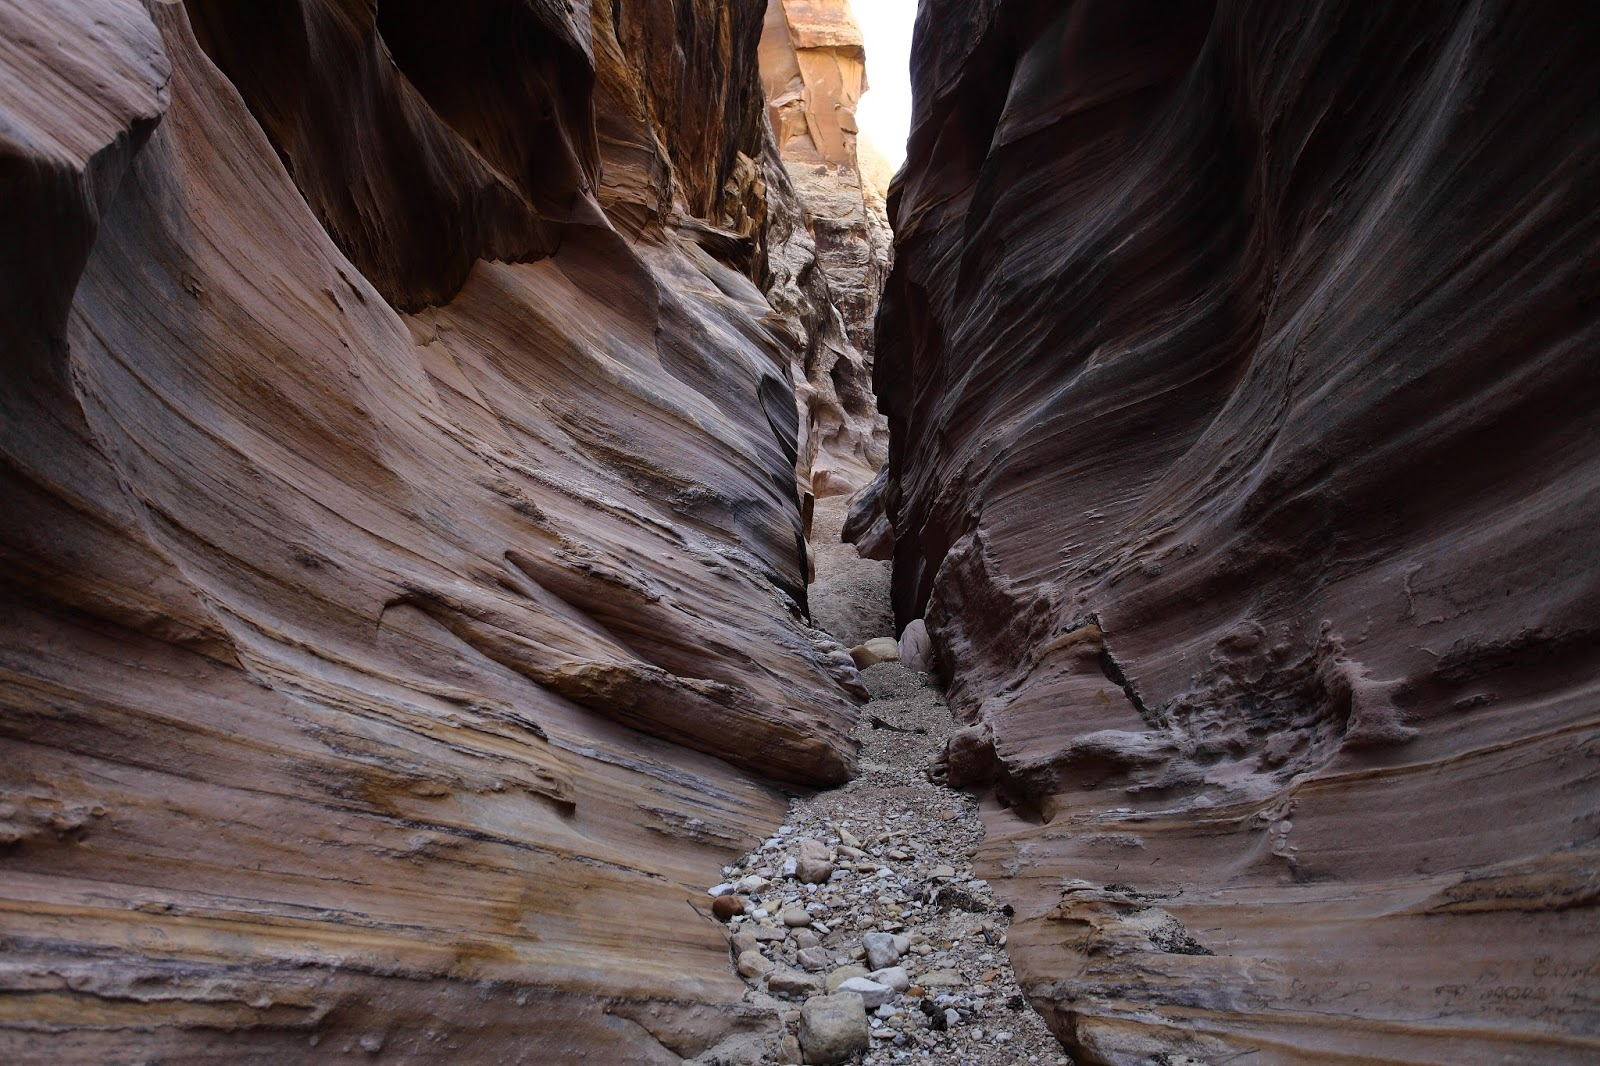 BAPTIST DRAW & UPPER CHUTE CANYON LOOP. SAN RAFAEL SWELL ...